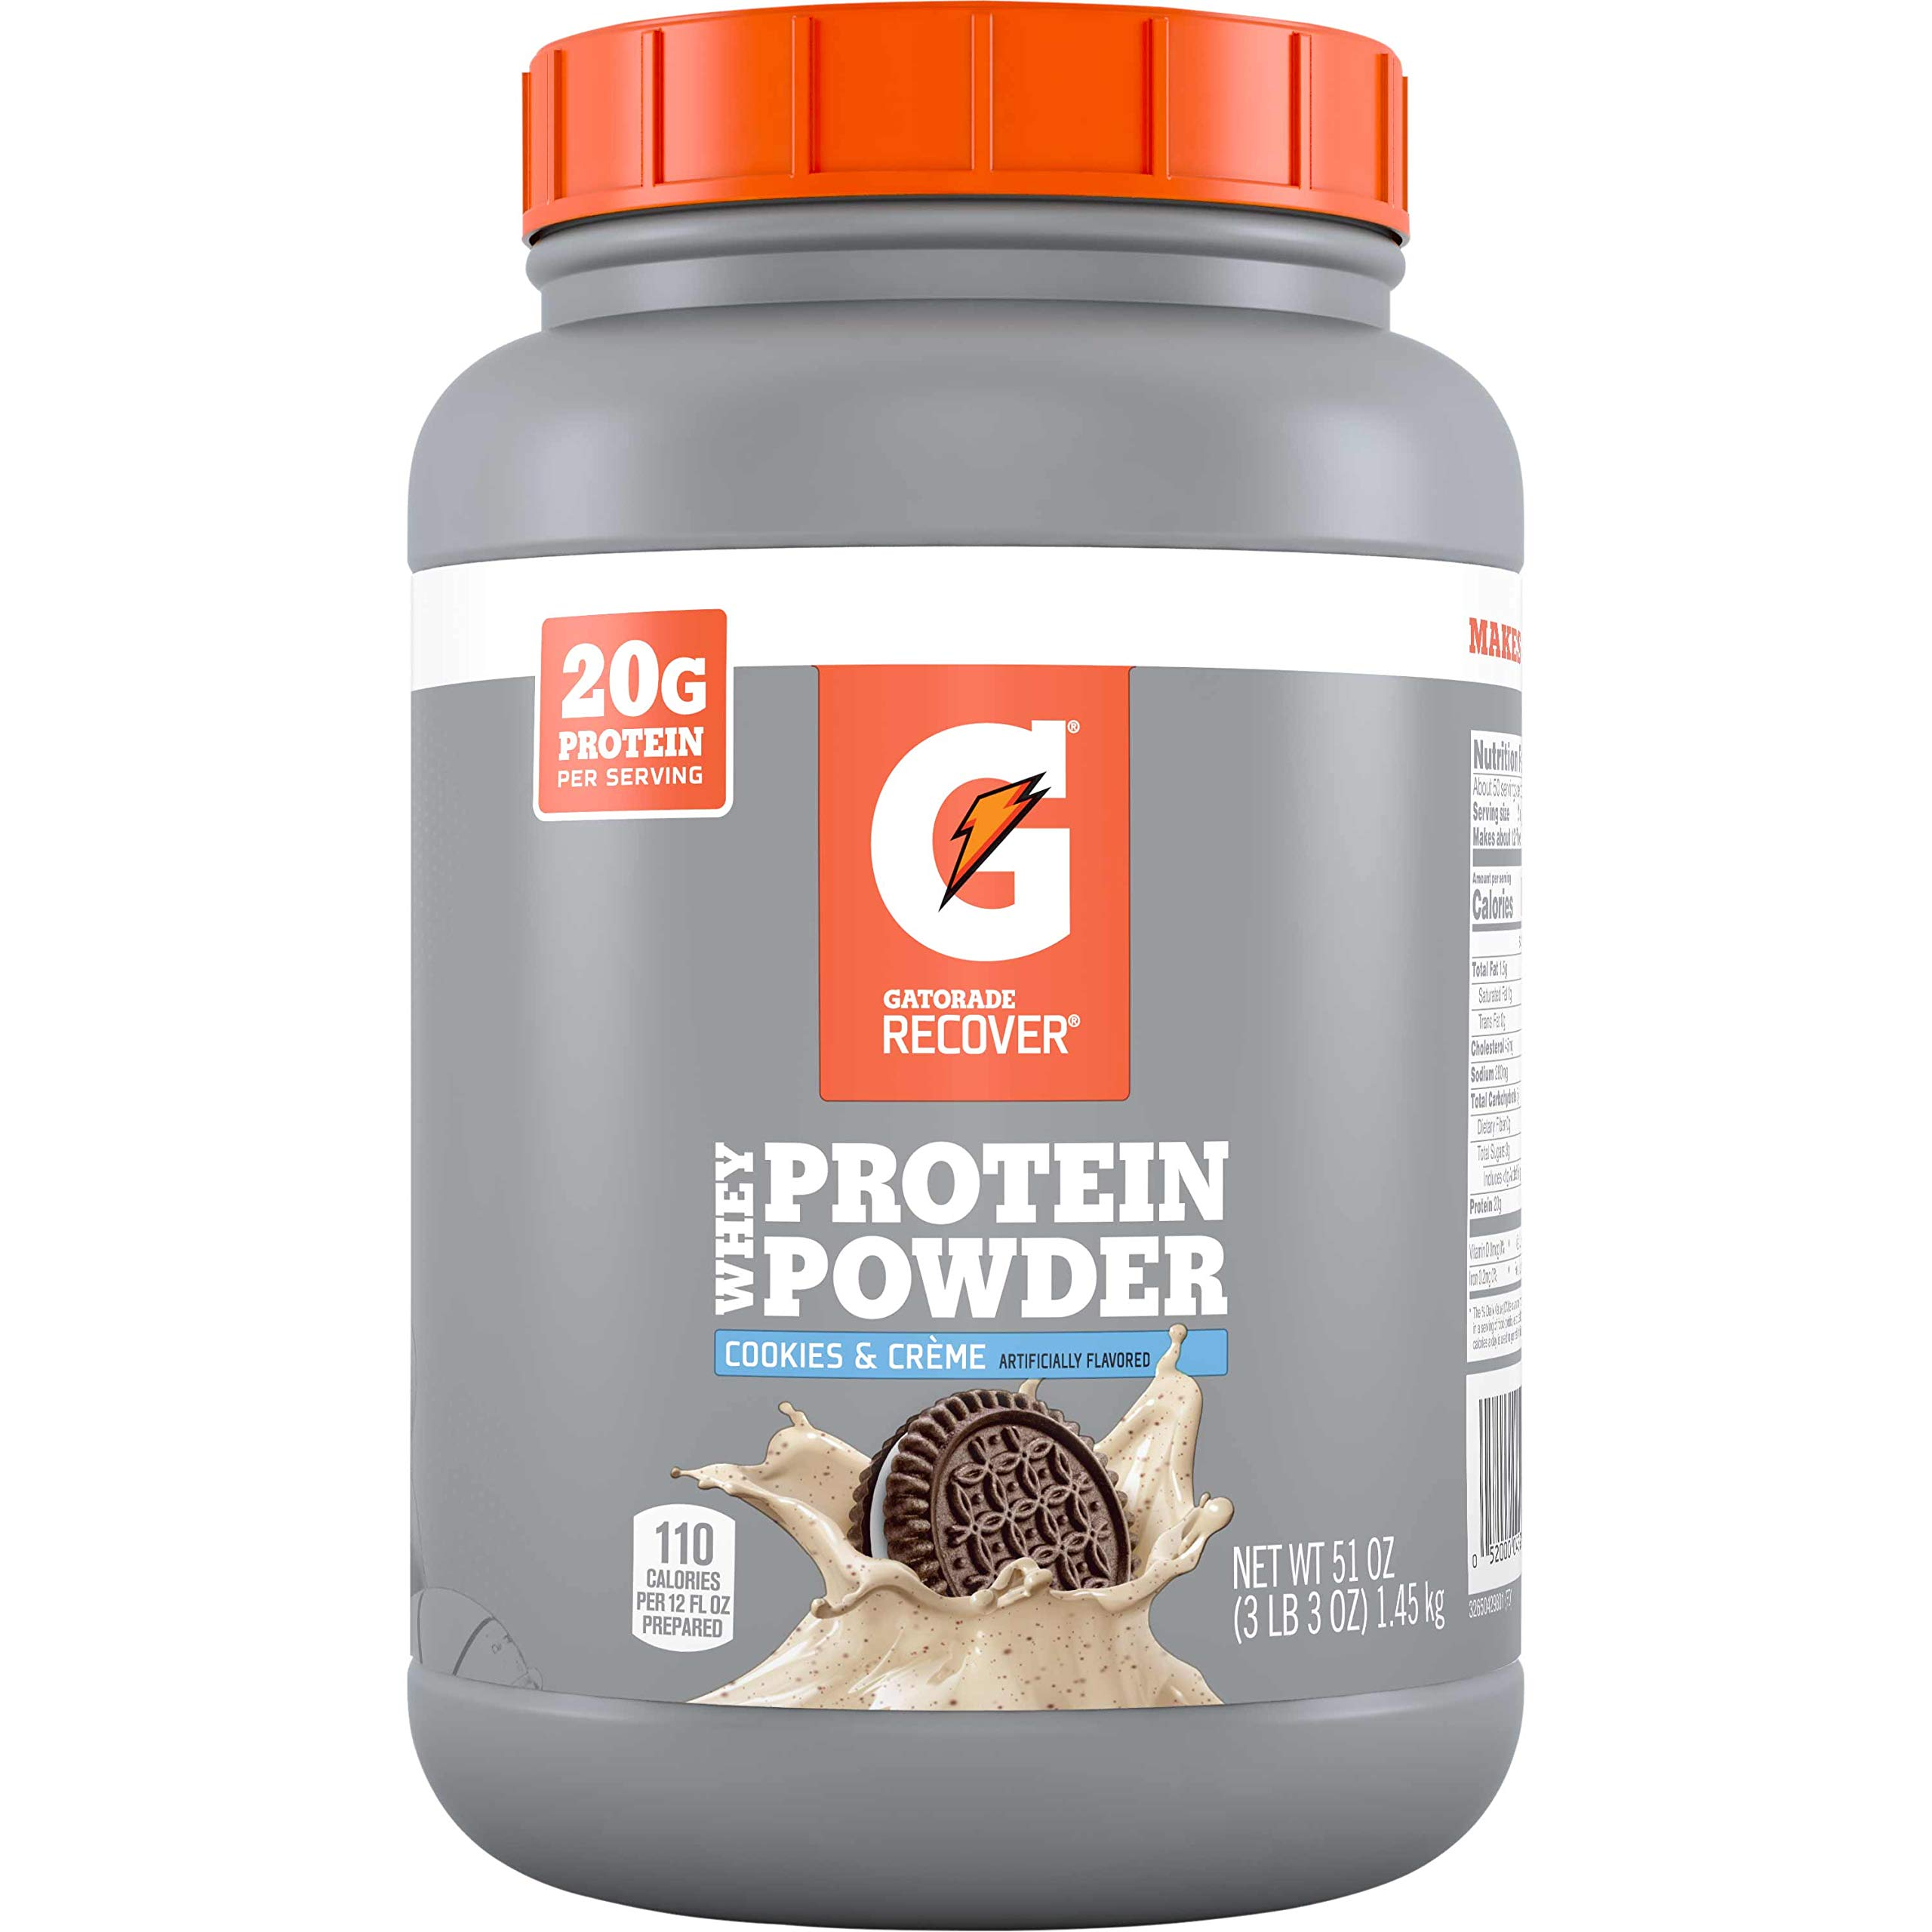 Gatorade Whey Protein Powder, Cookies & Crème, 51 Oz (50 servings per canister, 20 grams of protein per serving)